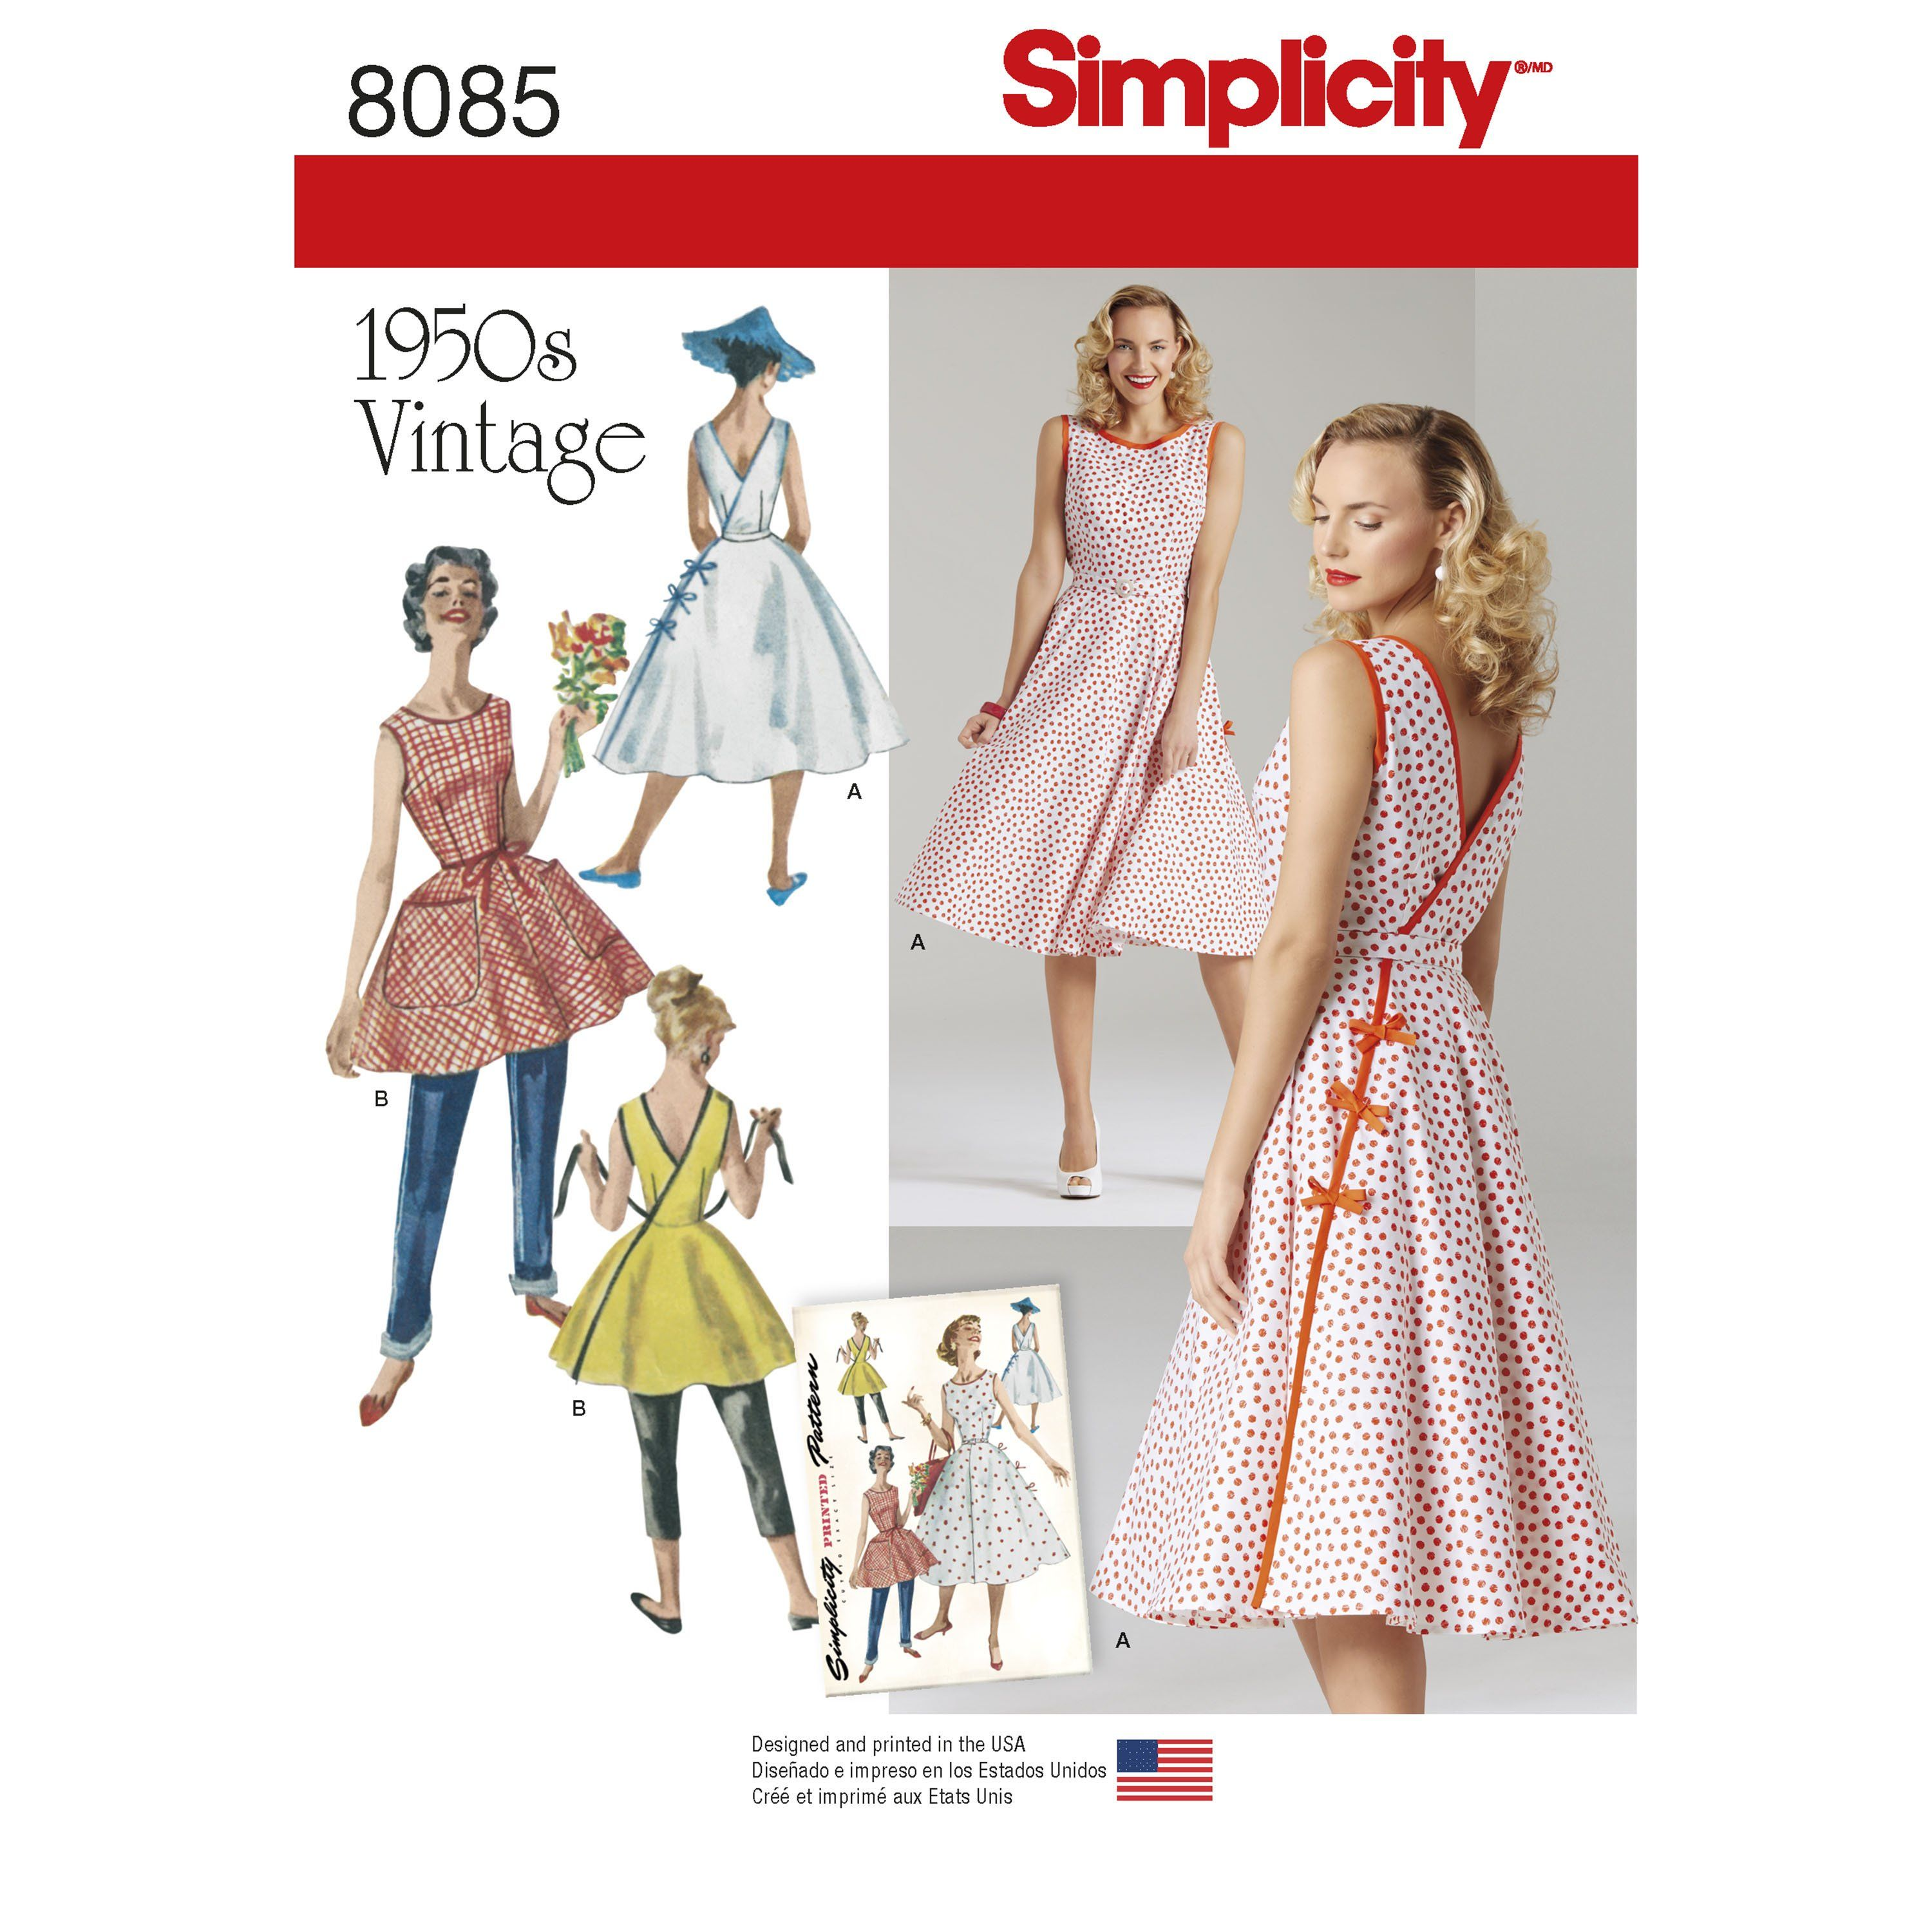 This Great Wrap Dress From The 1950 S Features A Midi Dress With Three Tie Closure Vintage Wrap Dress Wrap Dress Sewing Patterns Vintage Dress Sewing Patterns [ 3000 x 3000 Pixel ]